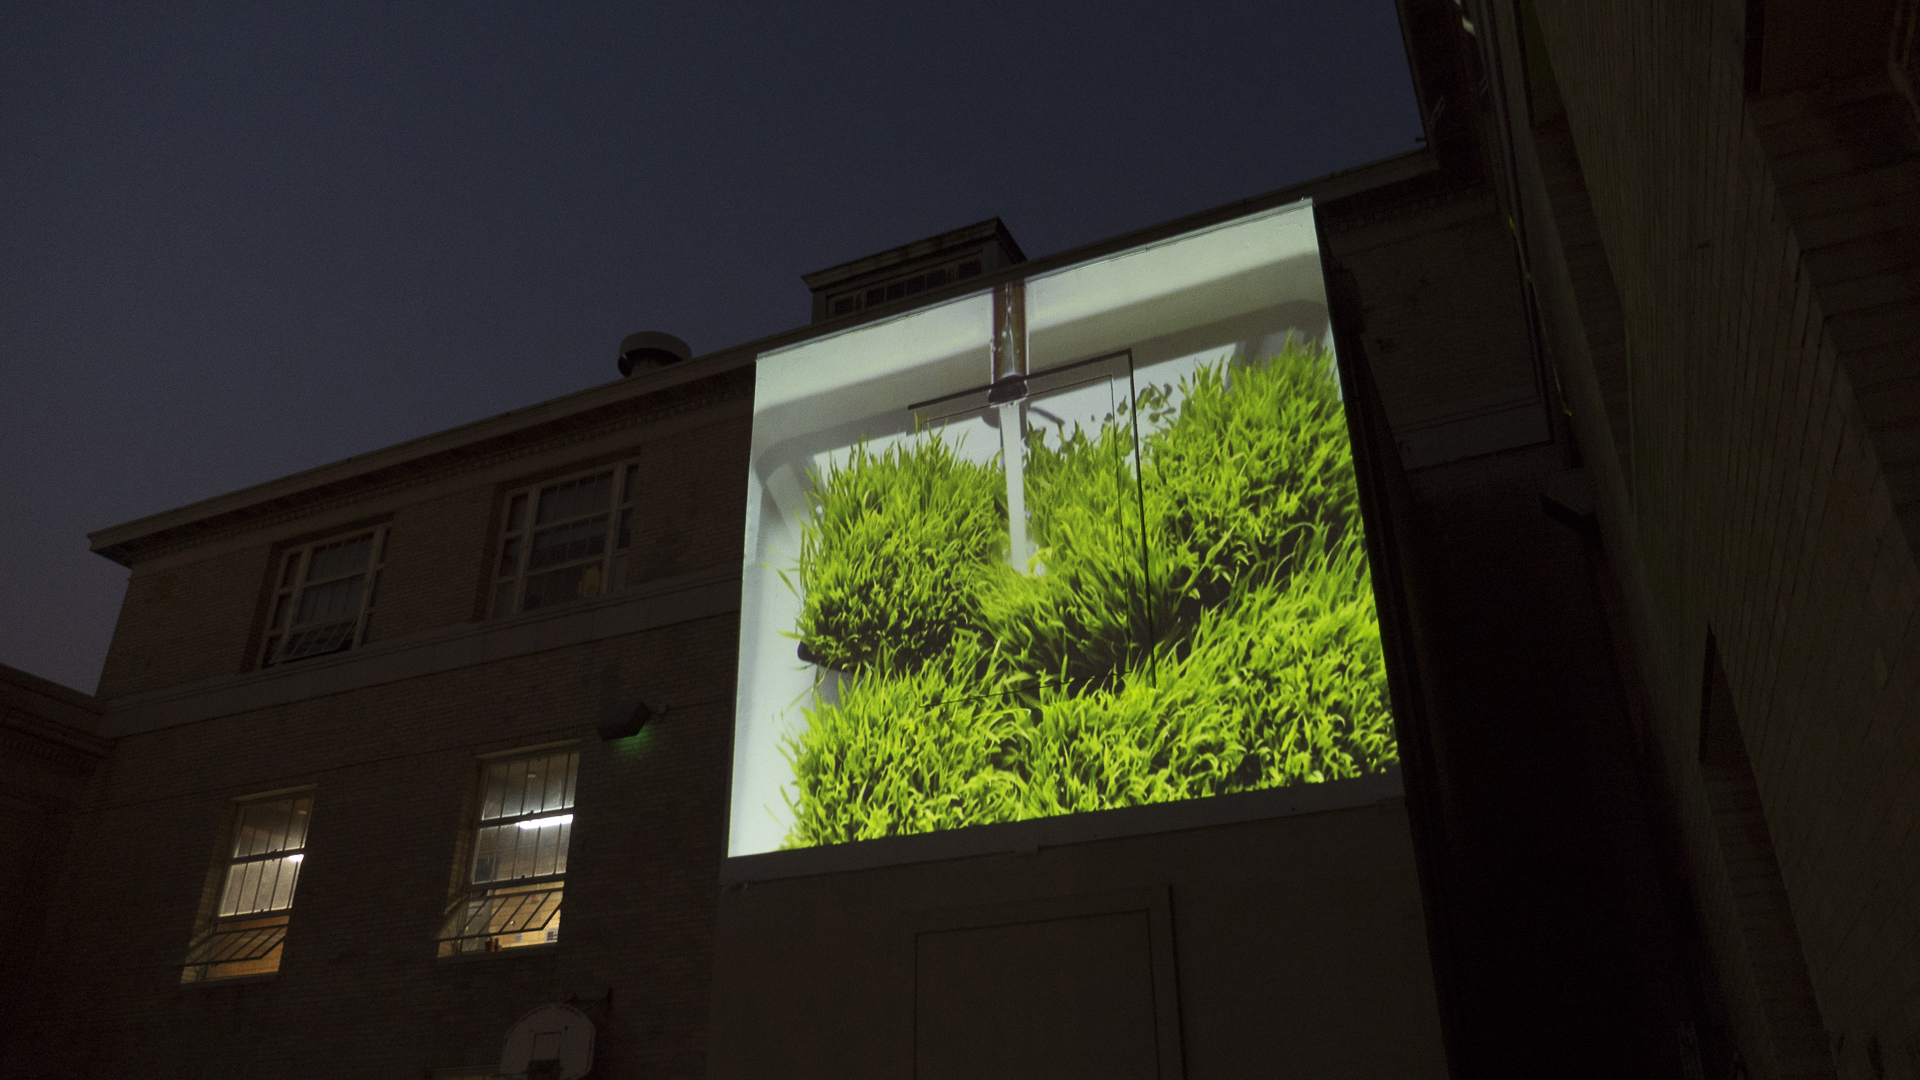 Watching the green grass grow. Video installation on High Wall at Inscape Arts. 2017